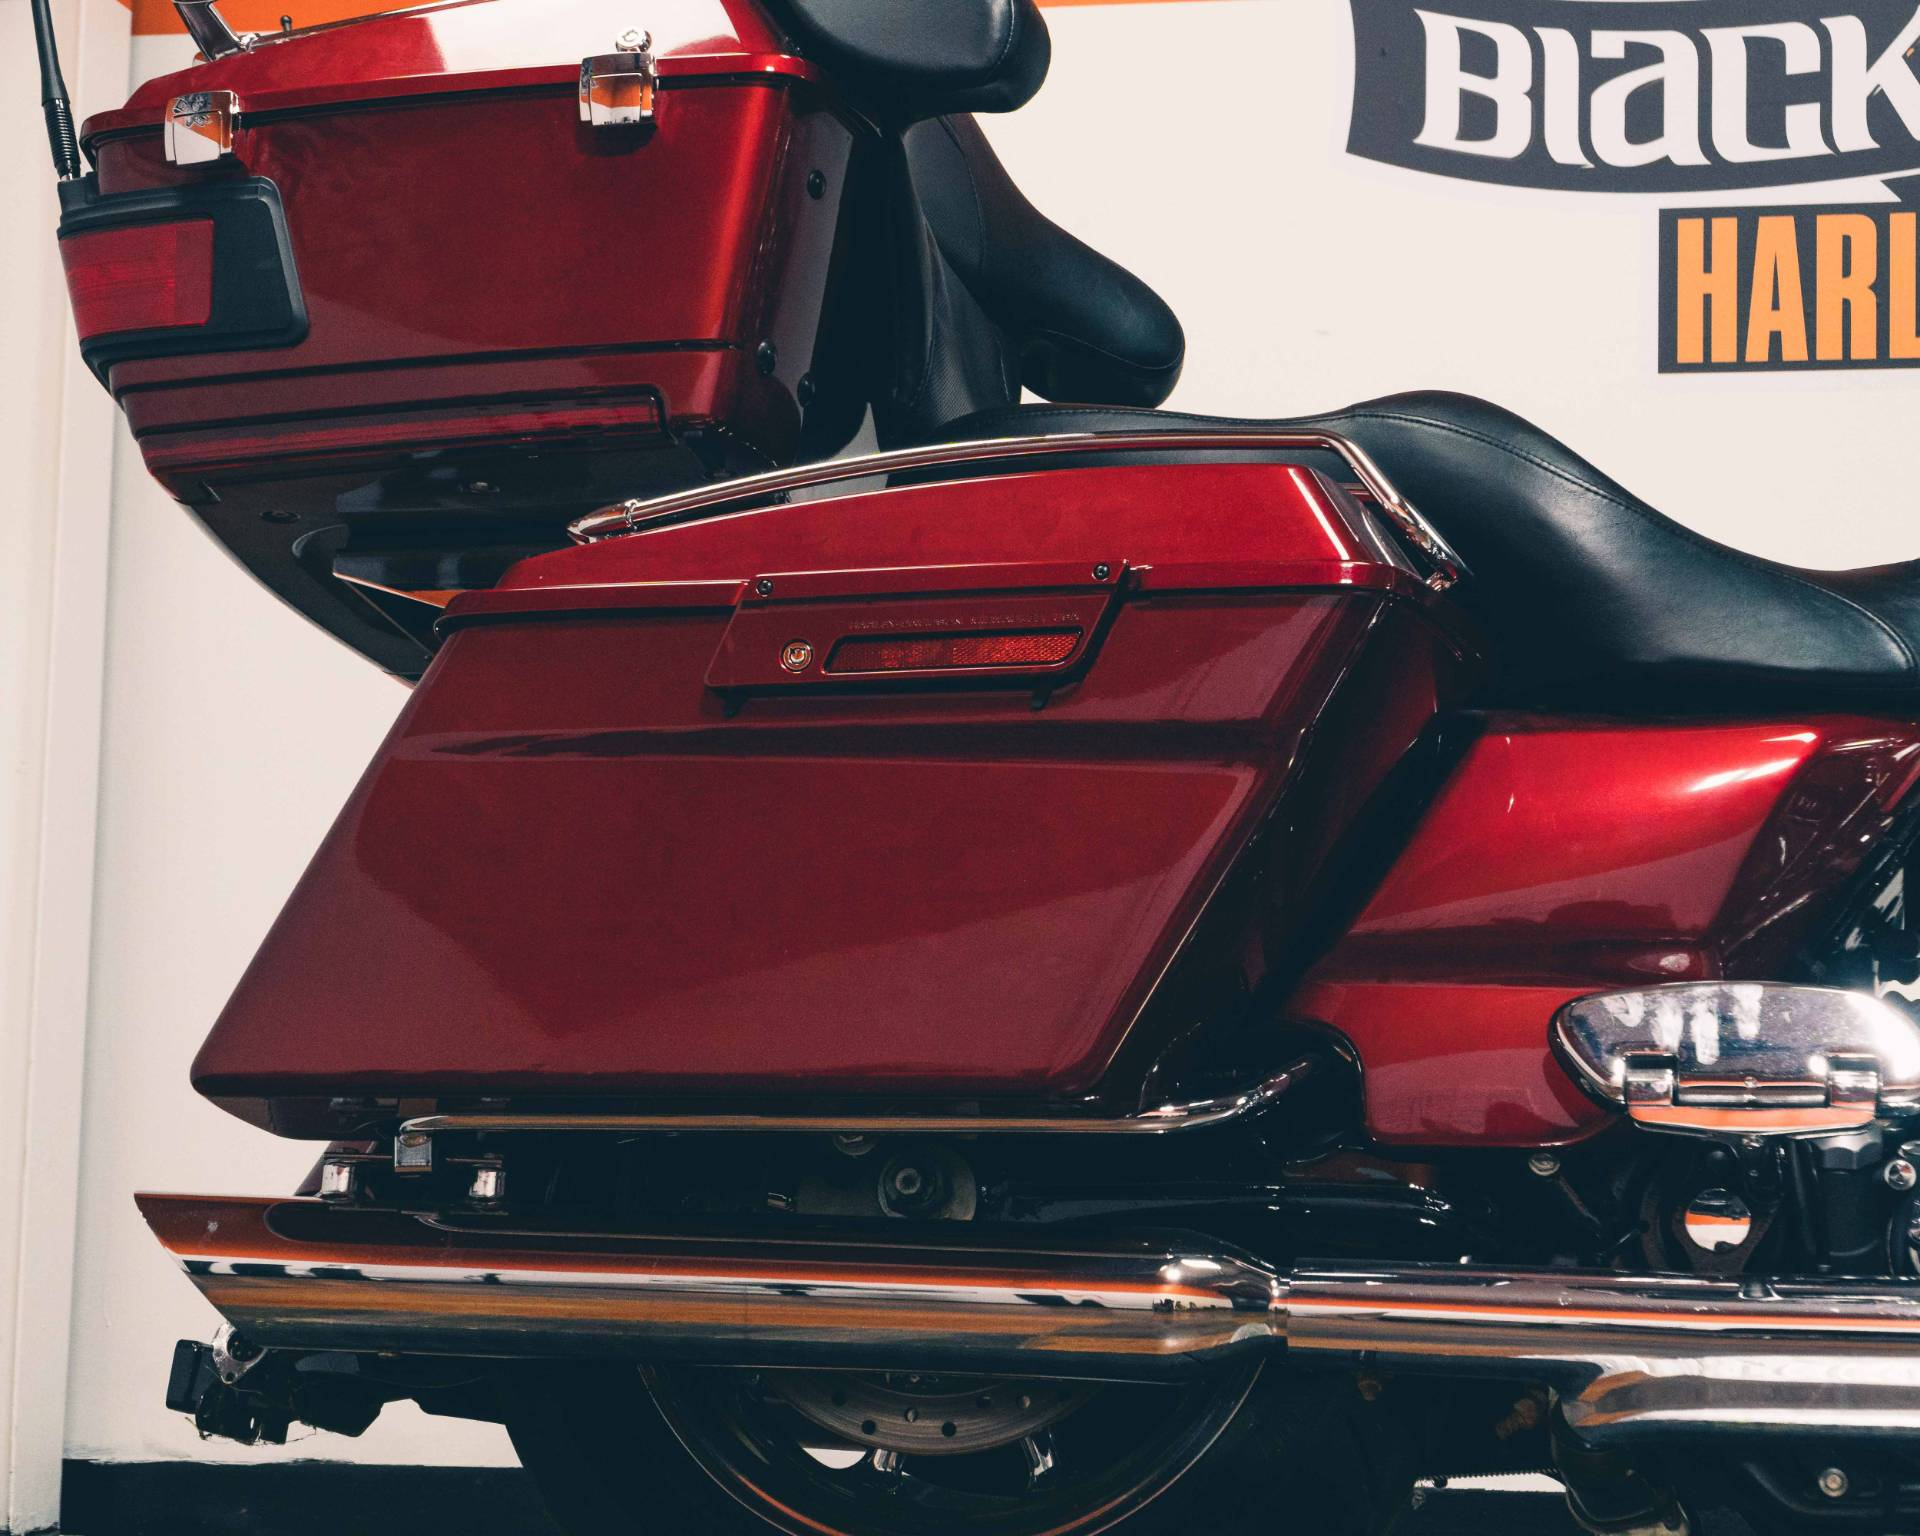 2009 Harley-Davidson Street Glide in Marion, Illinois - Photo 16